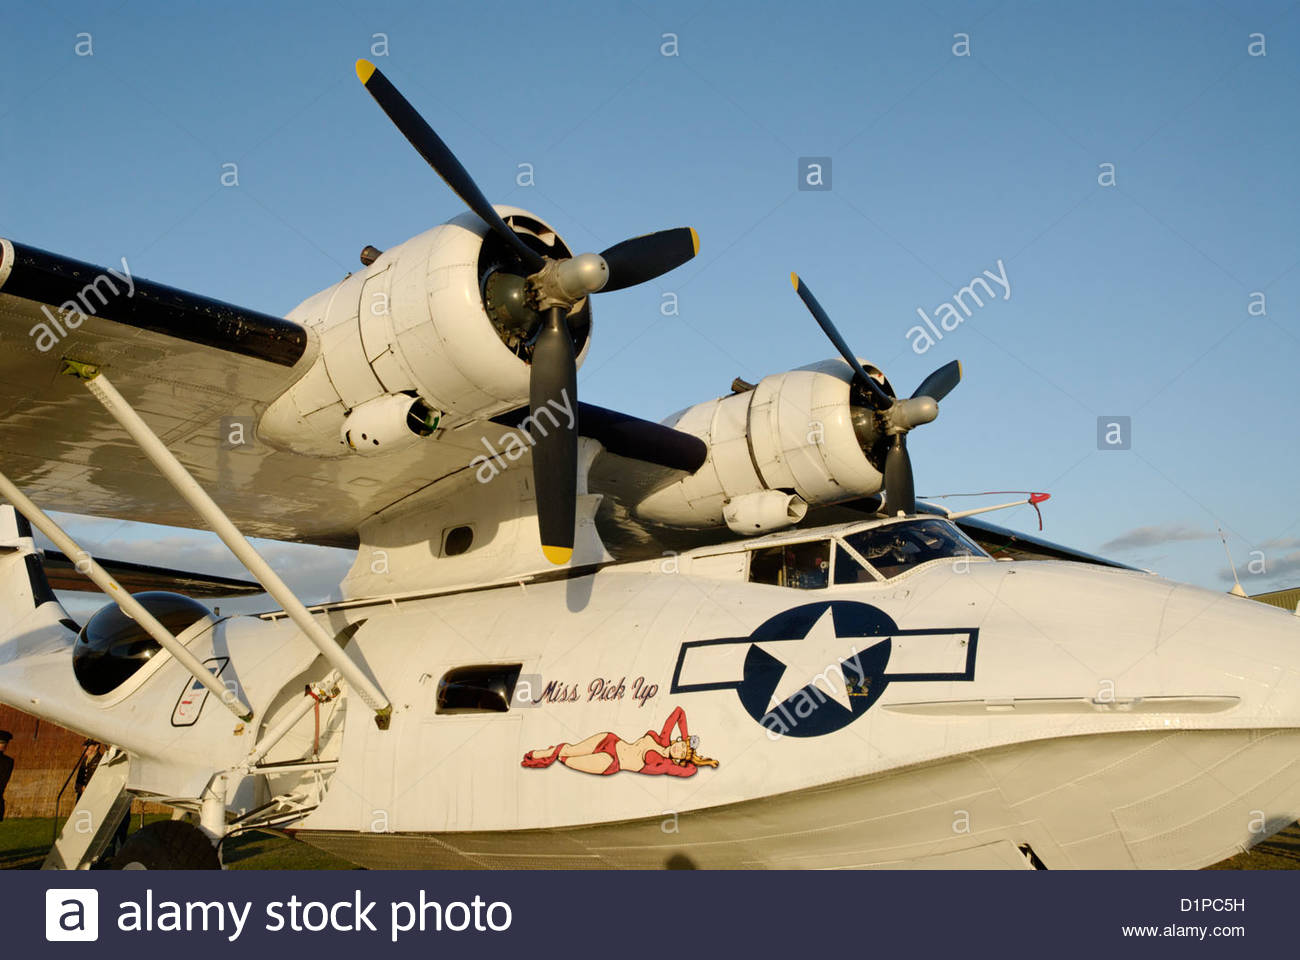 1943 Consolidated PBY-5A Catalina flying boat at the Goodwood Revival Meeting 2012 - Stock Image